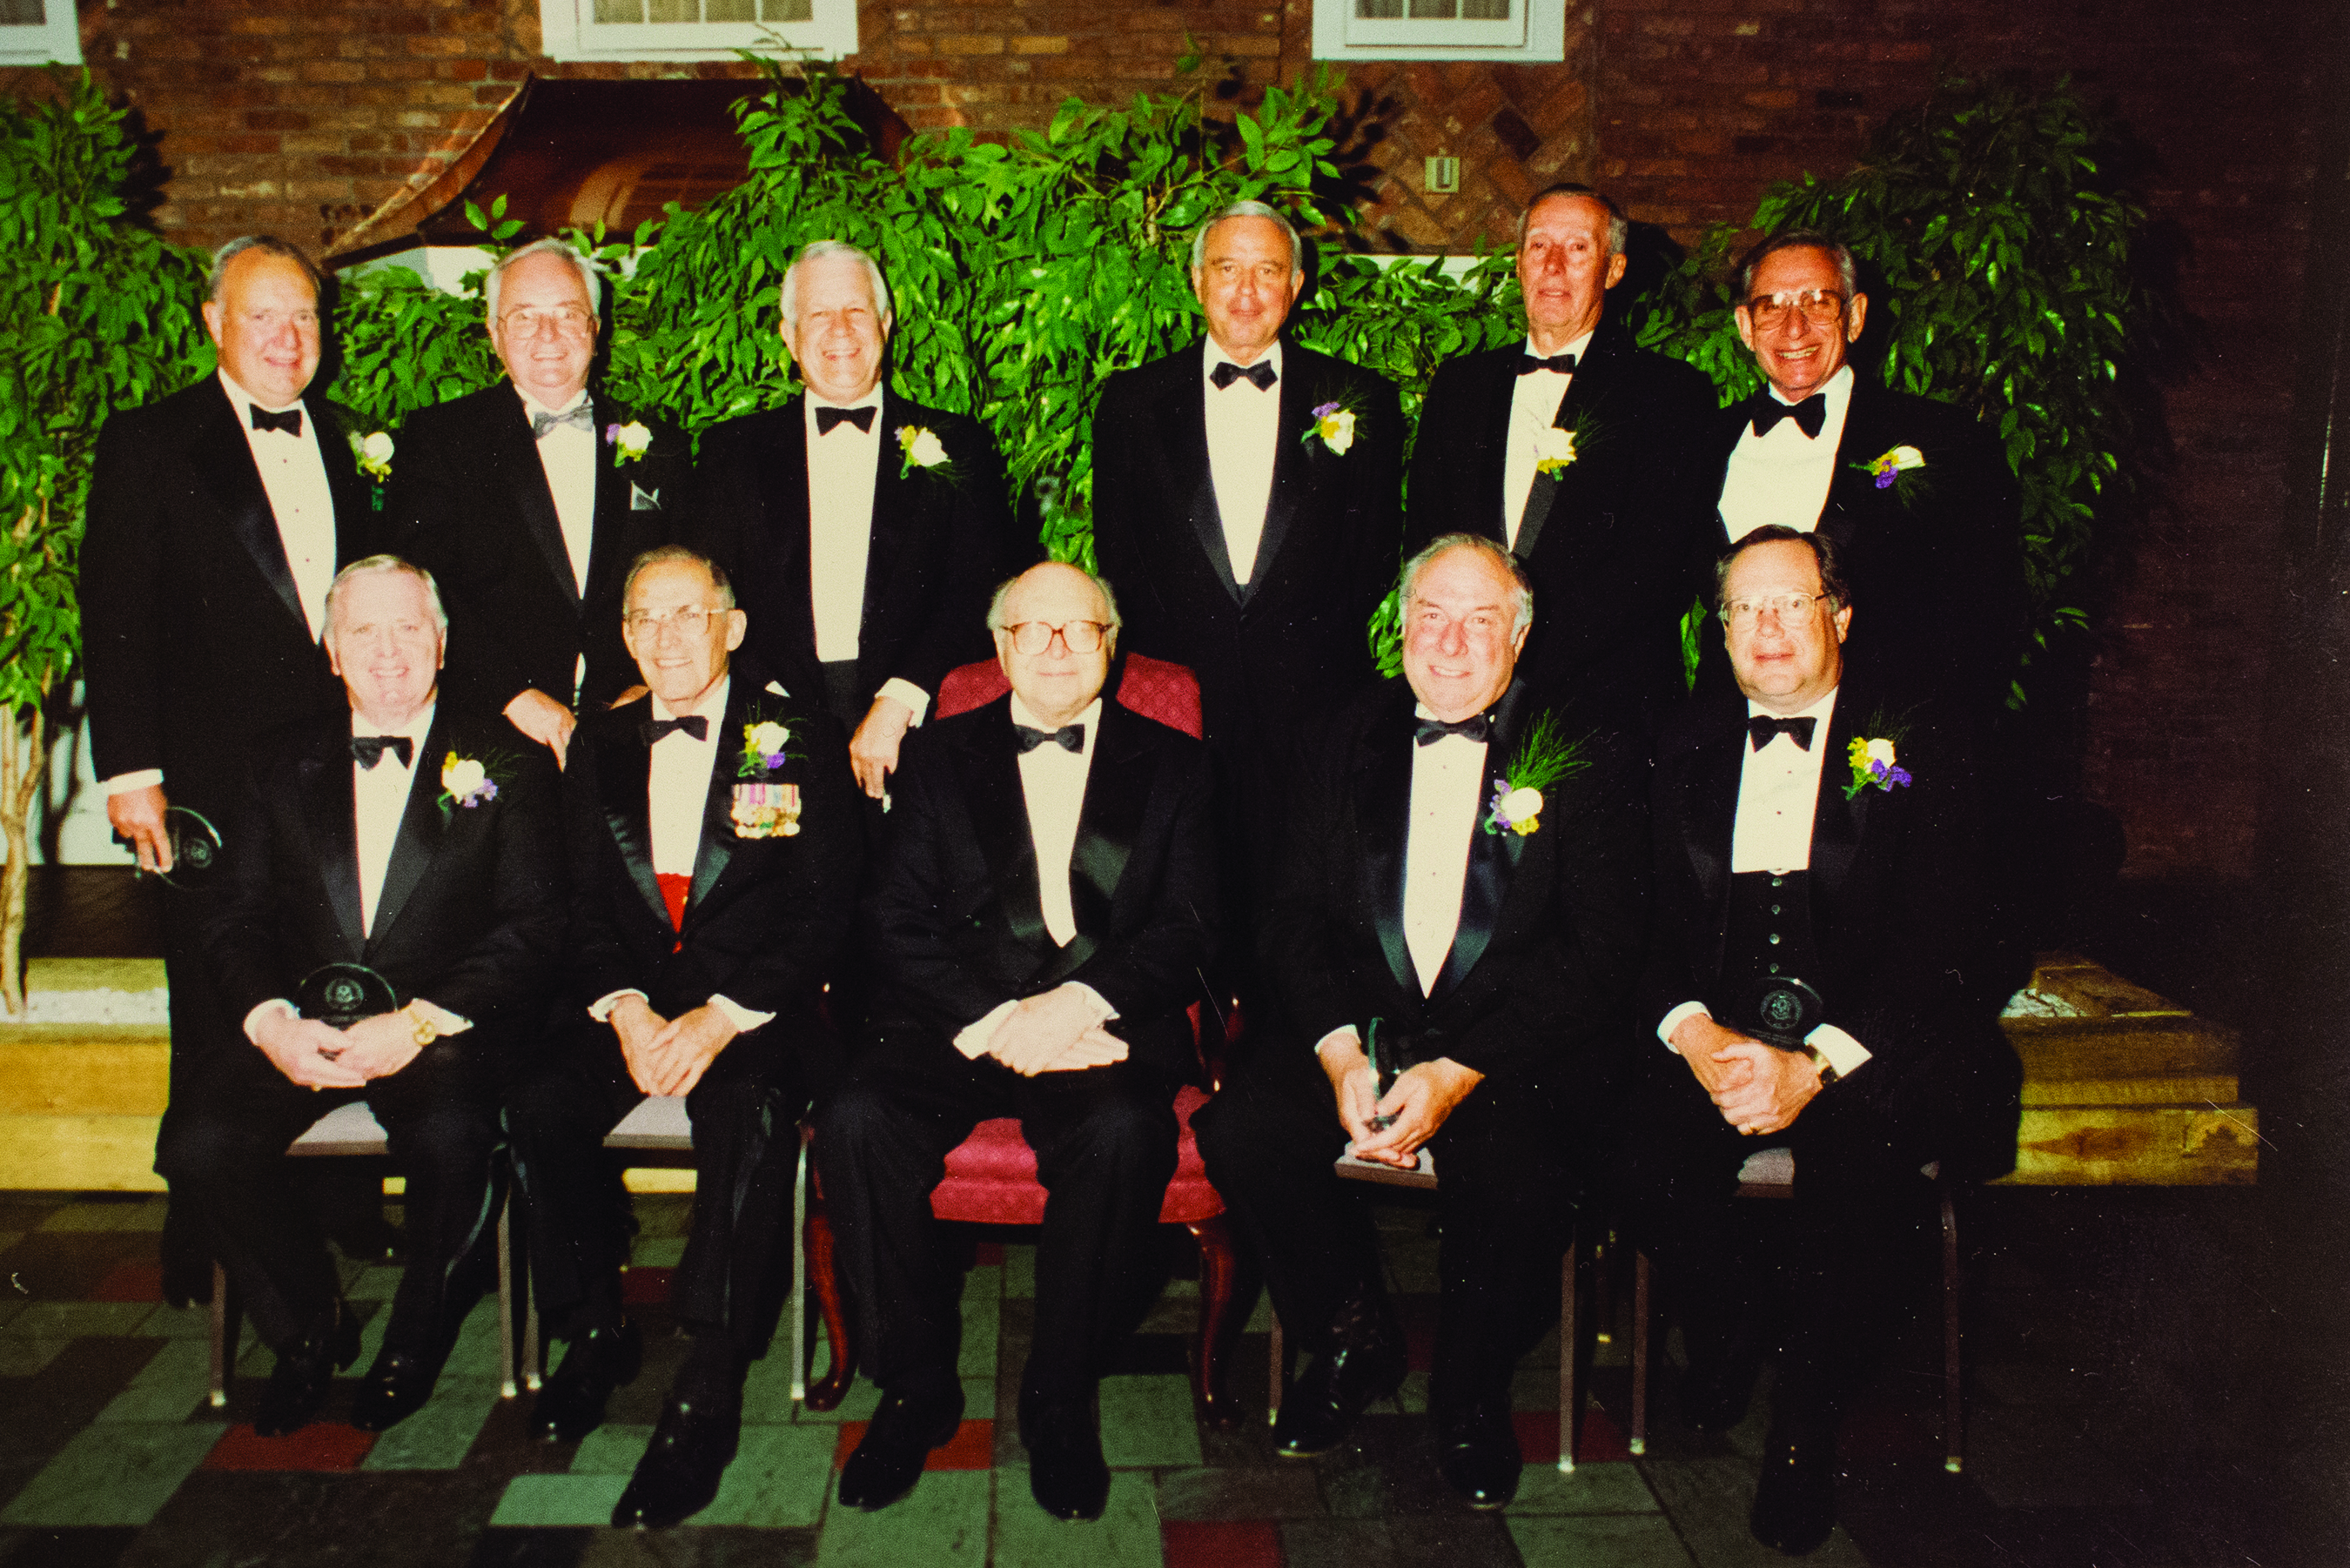 The first inductees to the UConn School of Business Hall of Fame in 1993 included — Front Row: Edward A. Horrigan, Jr. '50, Gen. Samuel Jaskilka '42, Harry A. Gampel '43, Edward F. Heberger '58, Robert R. Googins '58. Back Row: G. Robert O'Brien '60, James F. McNally '54, Robert Cizik '53, Ronald J. Bushwell '56, Gordon W. Tasker '47, Thomas J. Wolff '56.